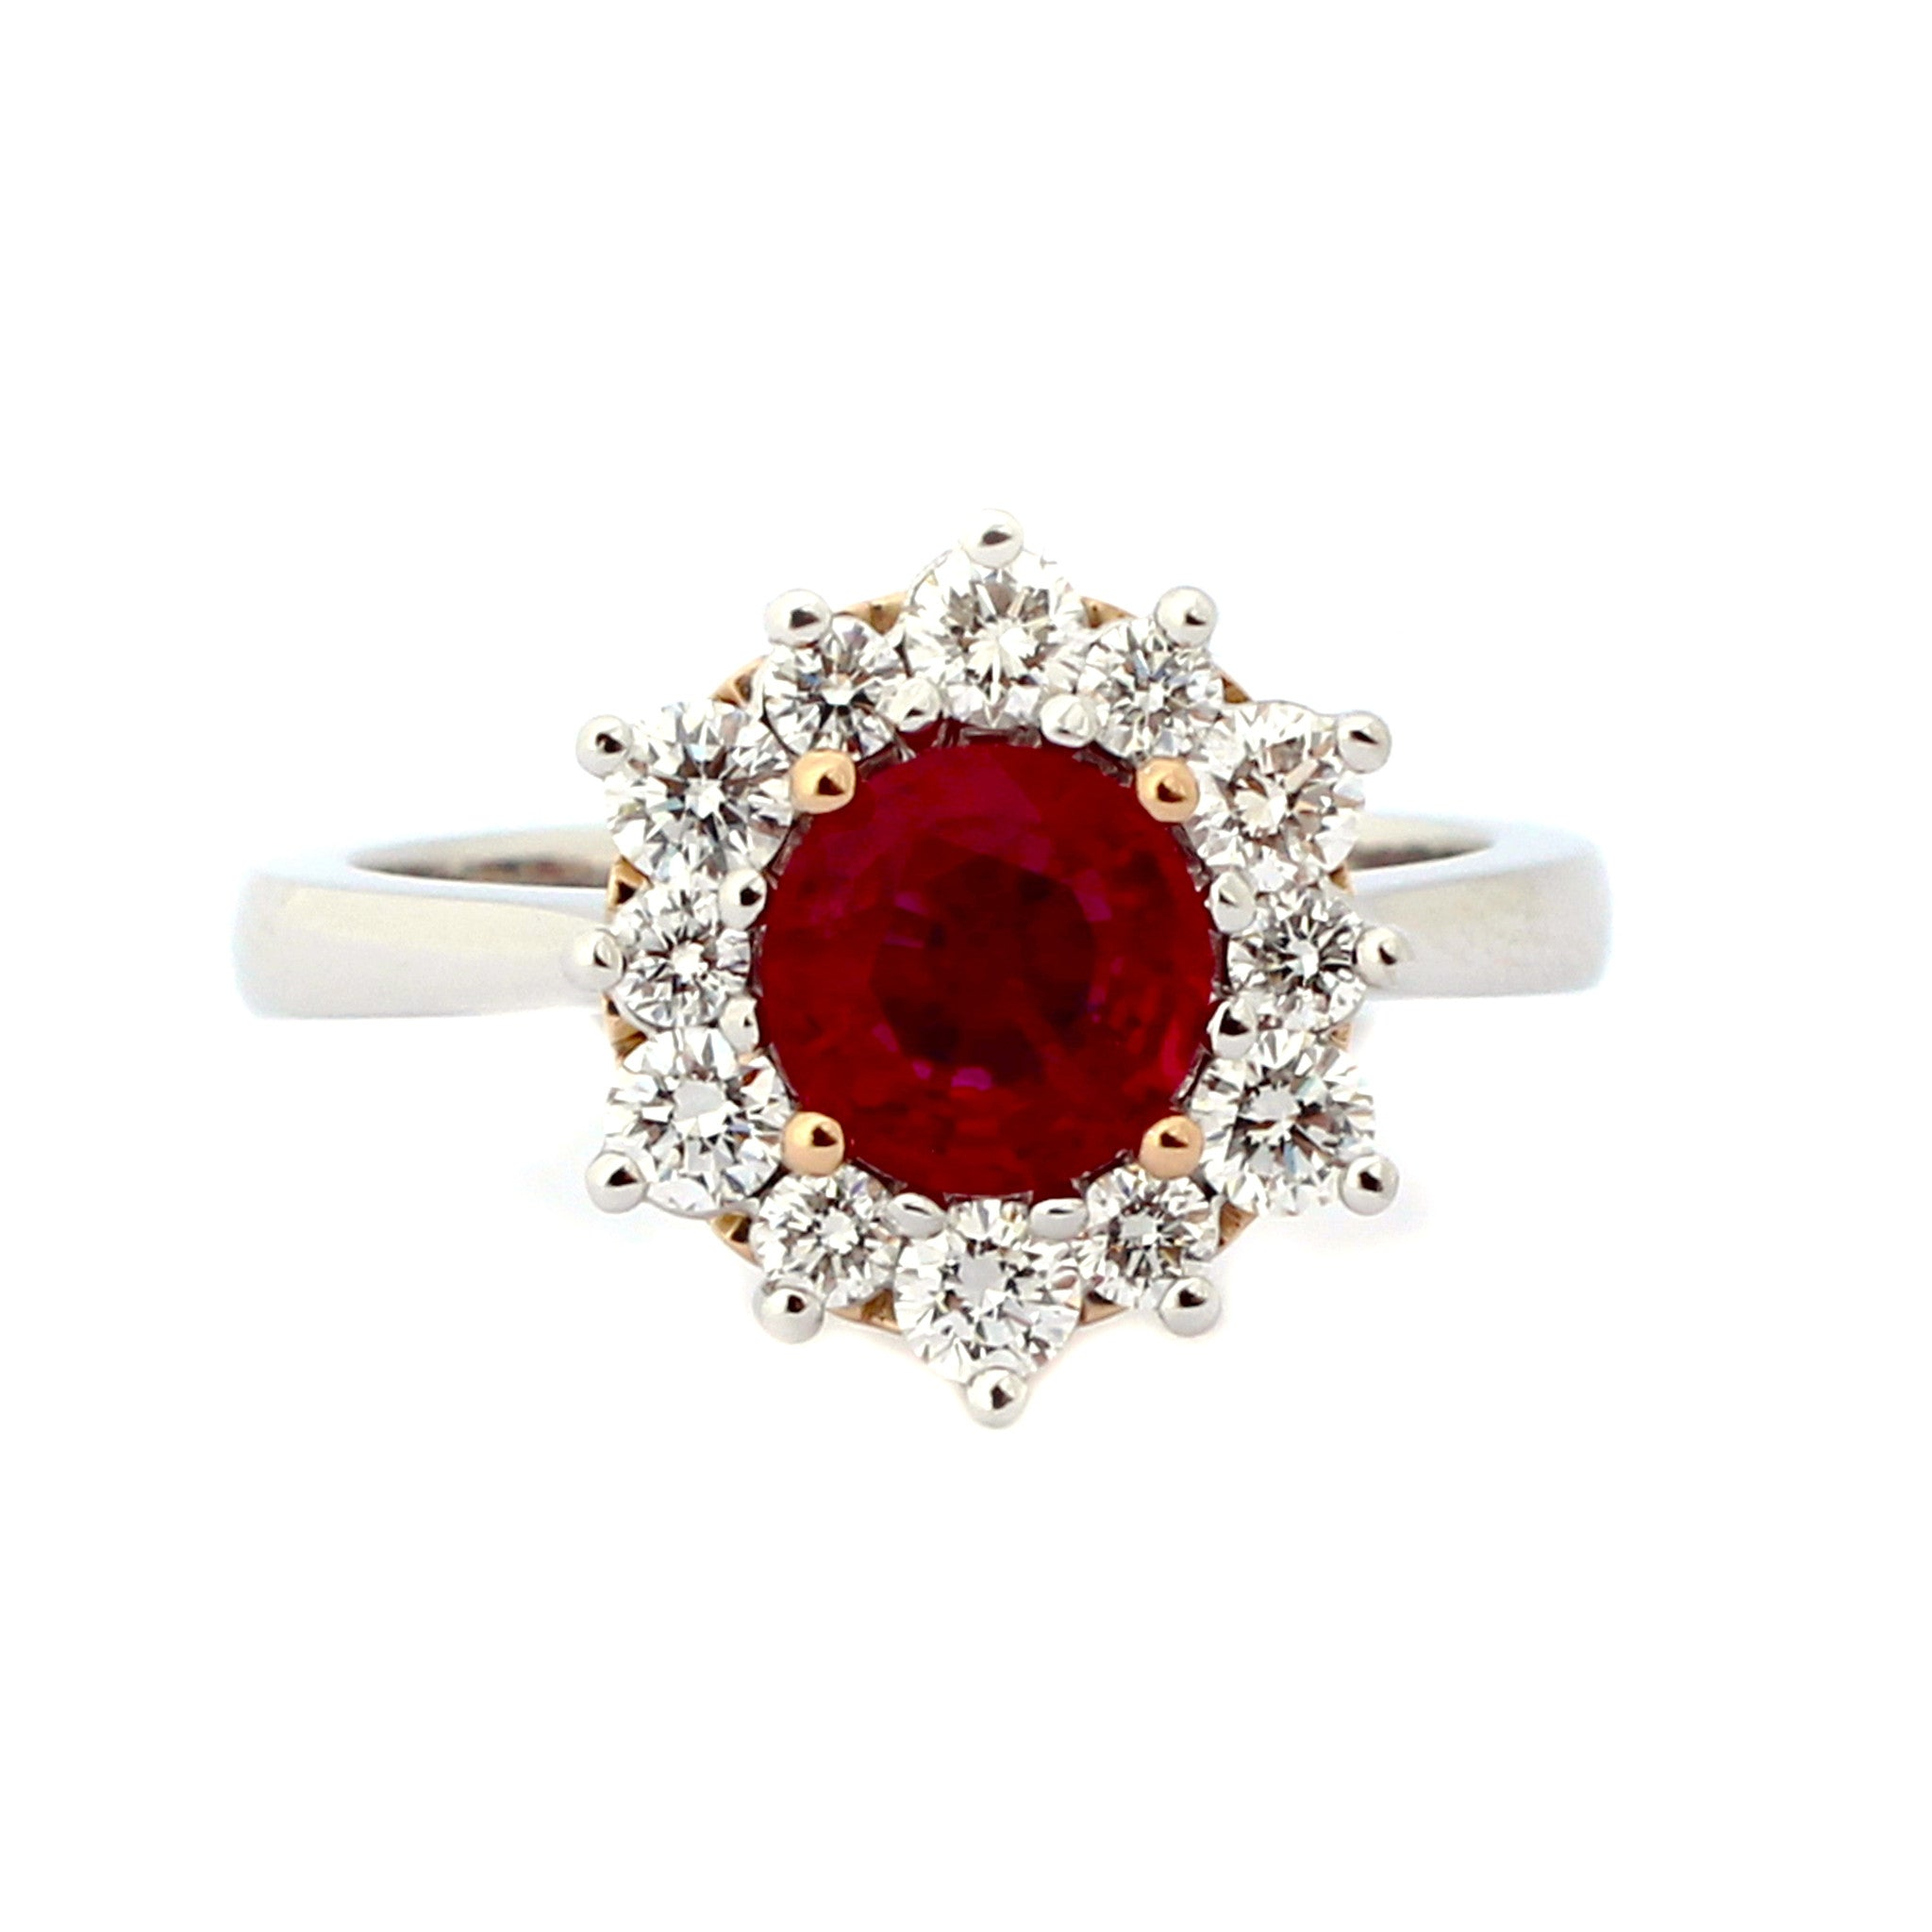 Vibrant Ruby Engagement Ring